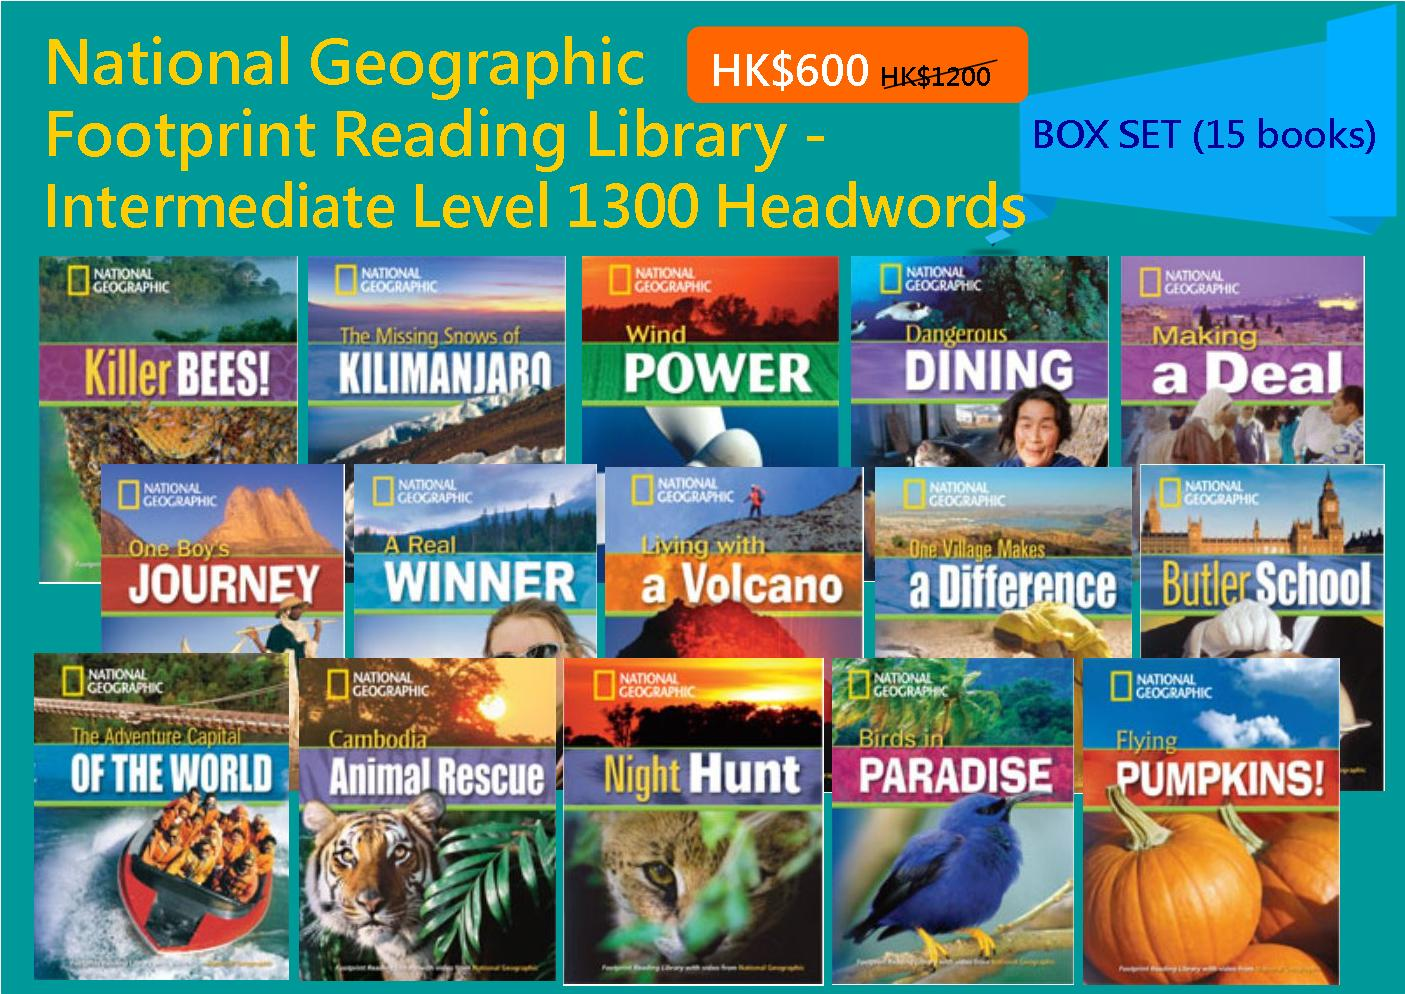 National Geographic Footprint Reading Library - Intermediate Level 1300 Headwords (Box Set - 15 books)